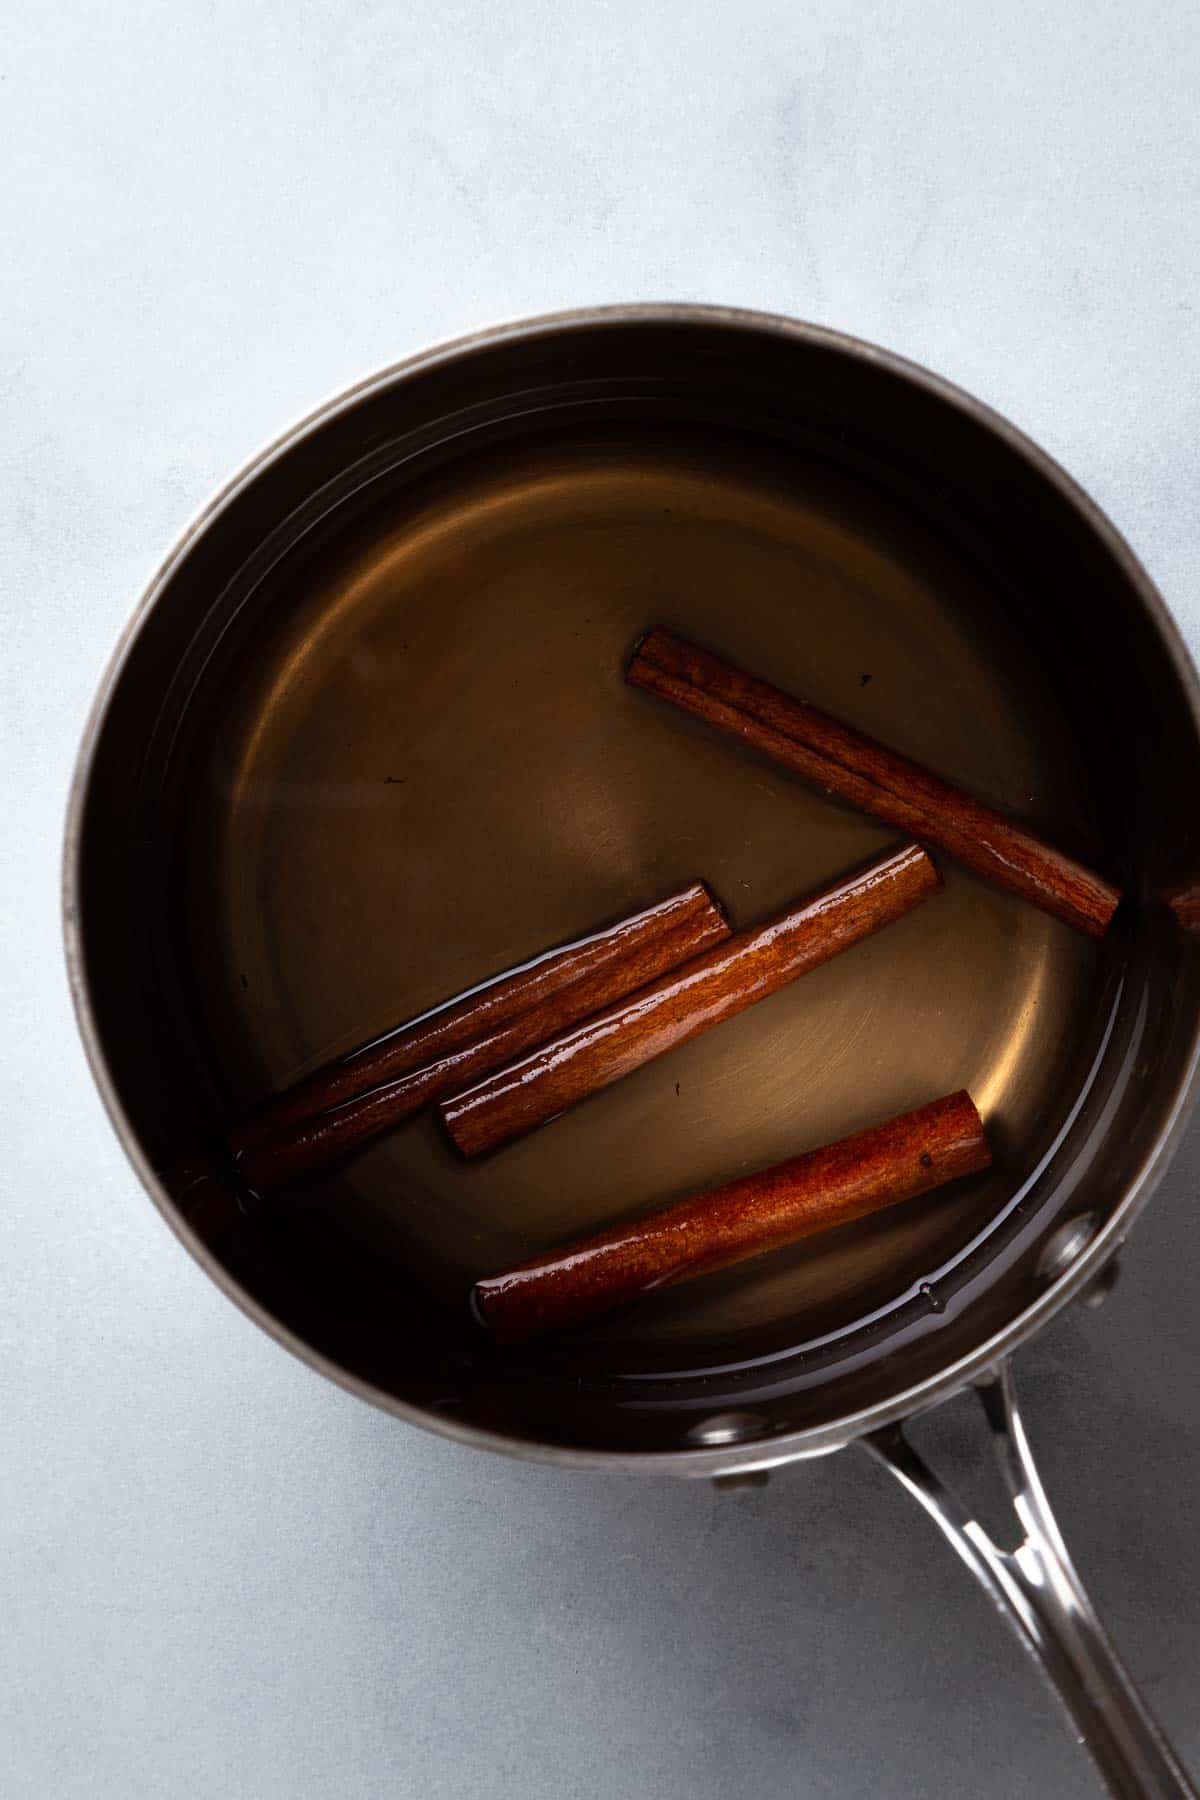 Cinnamon sticks and simple syrup in a saucepan